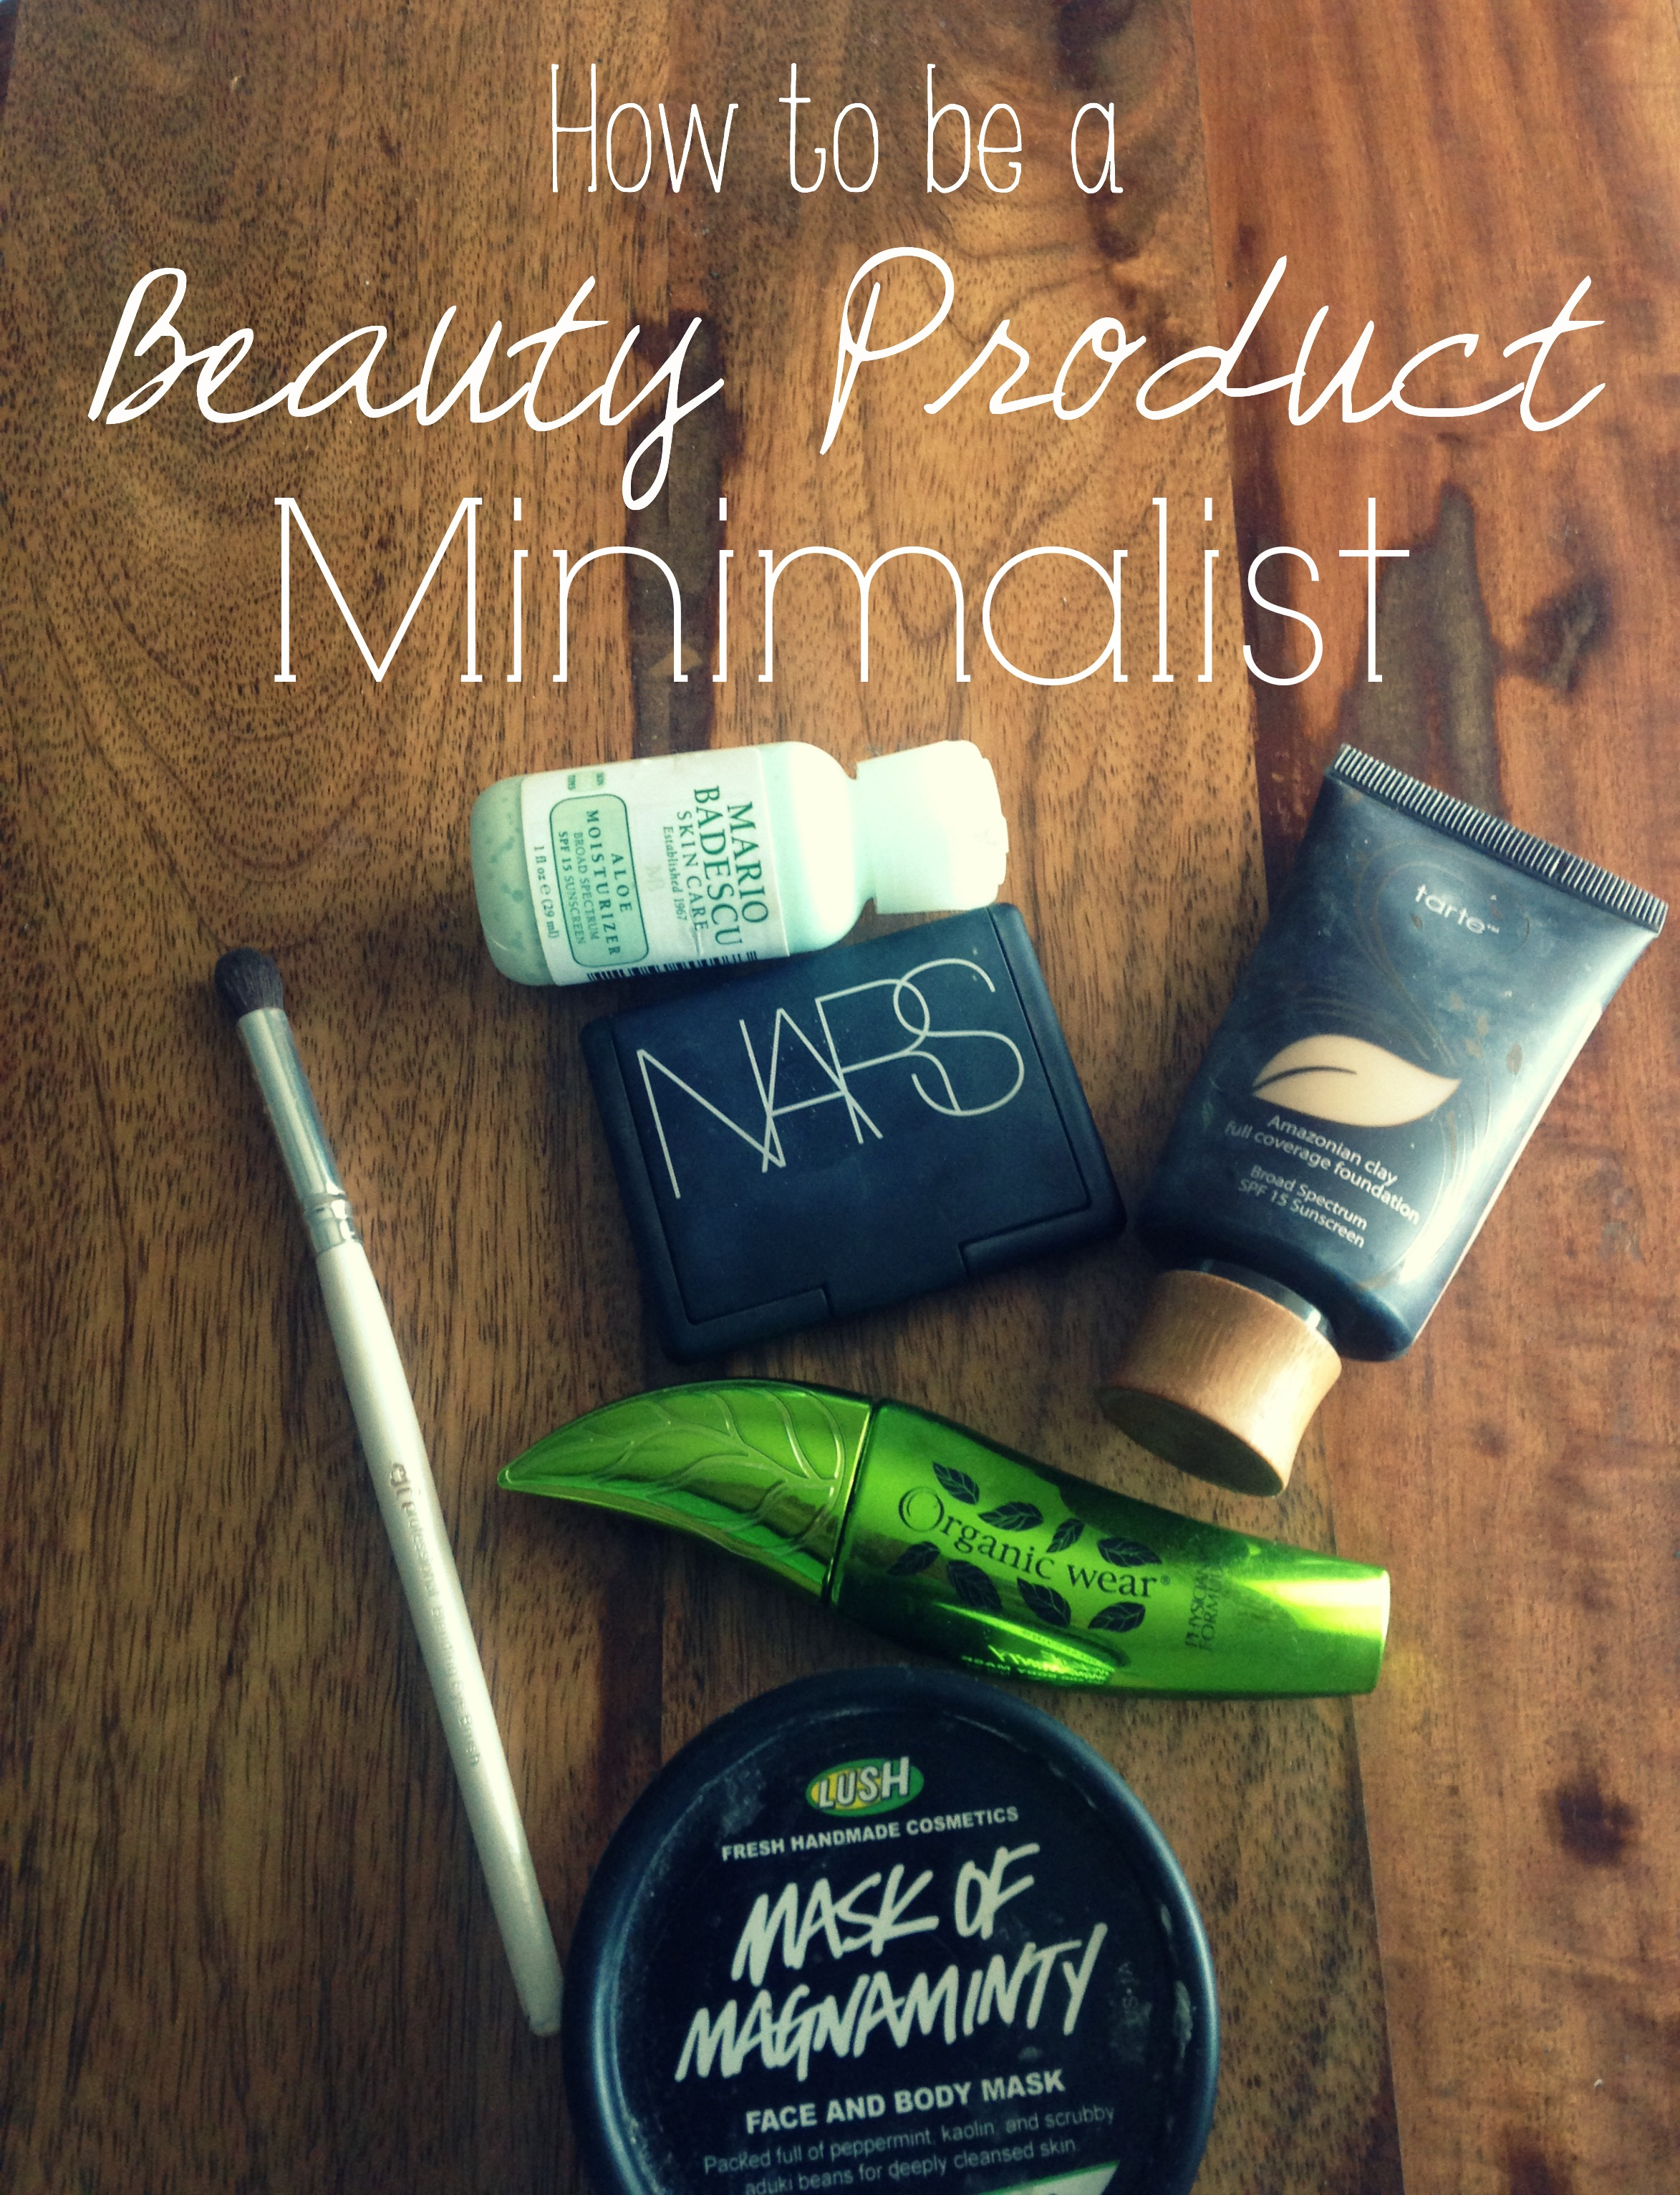 How to be a Beauty Product Minimalist